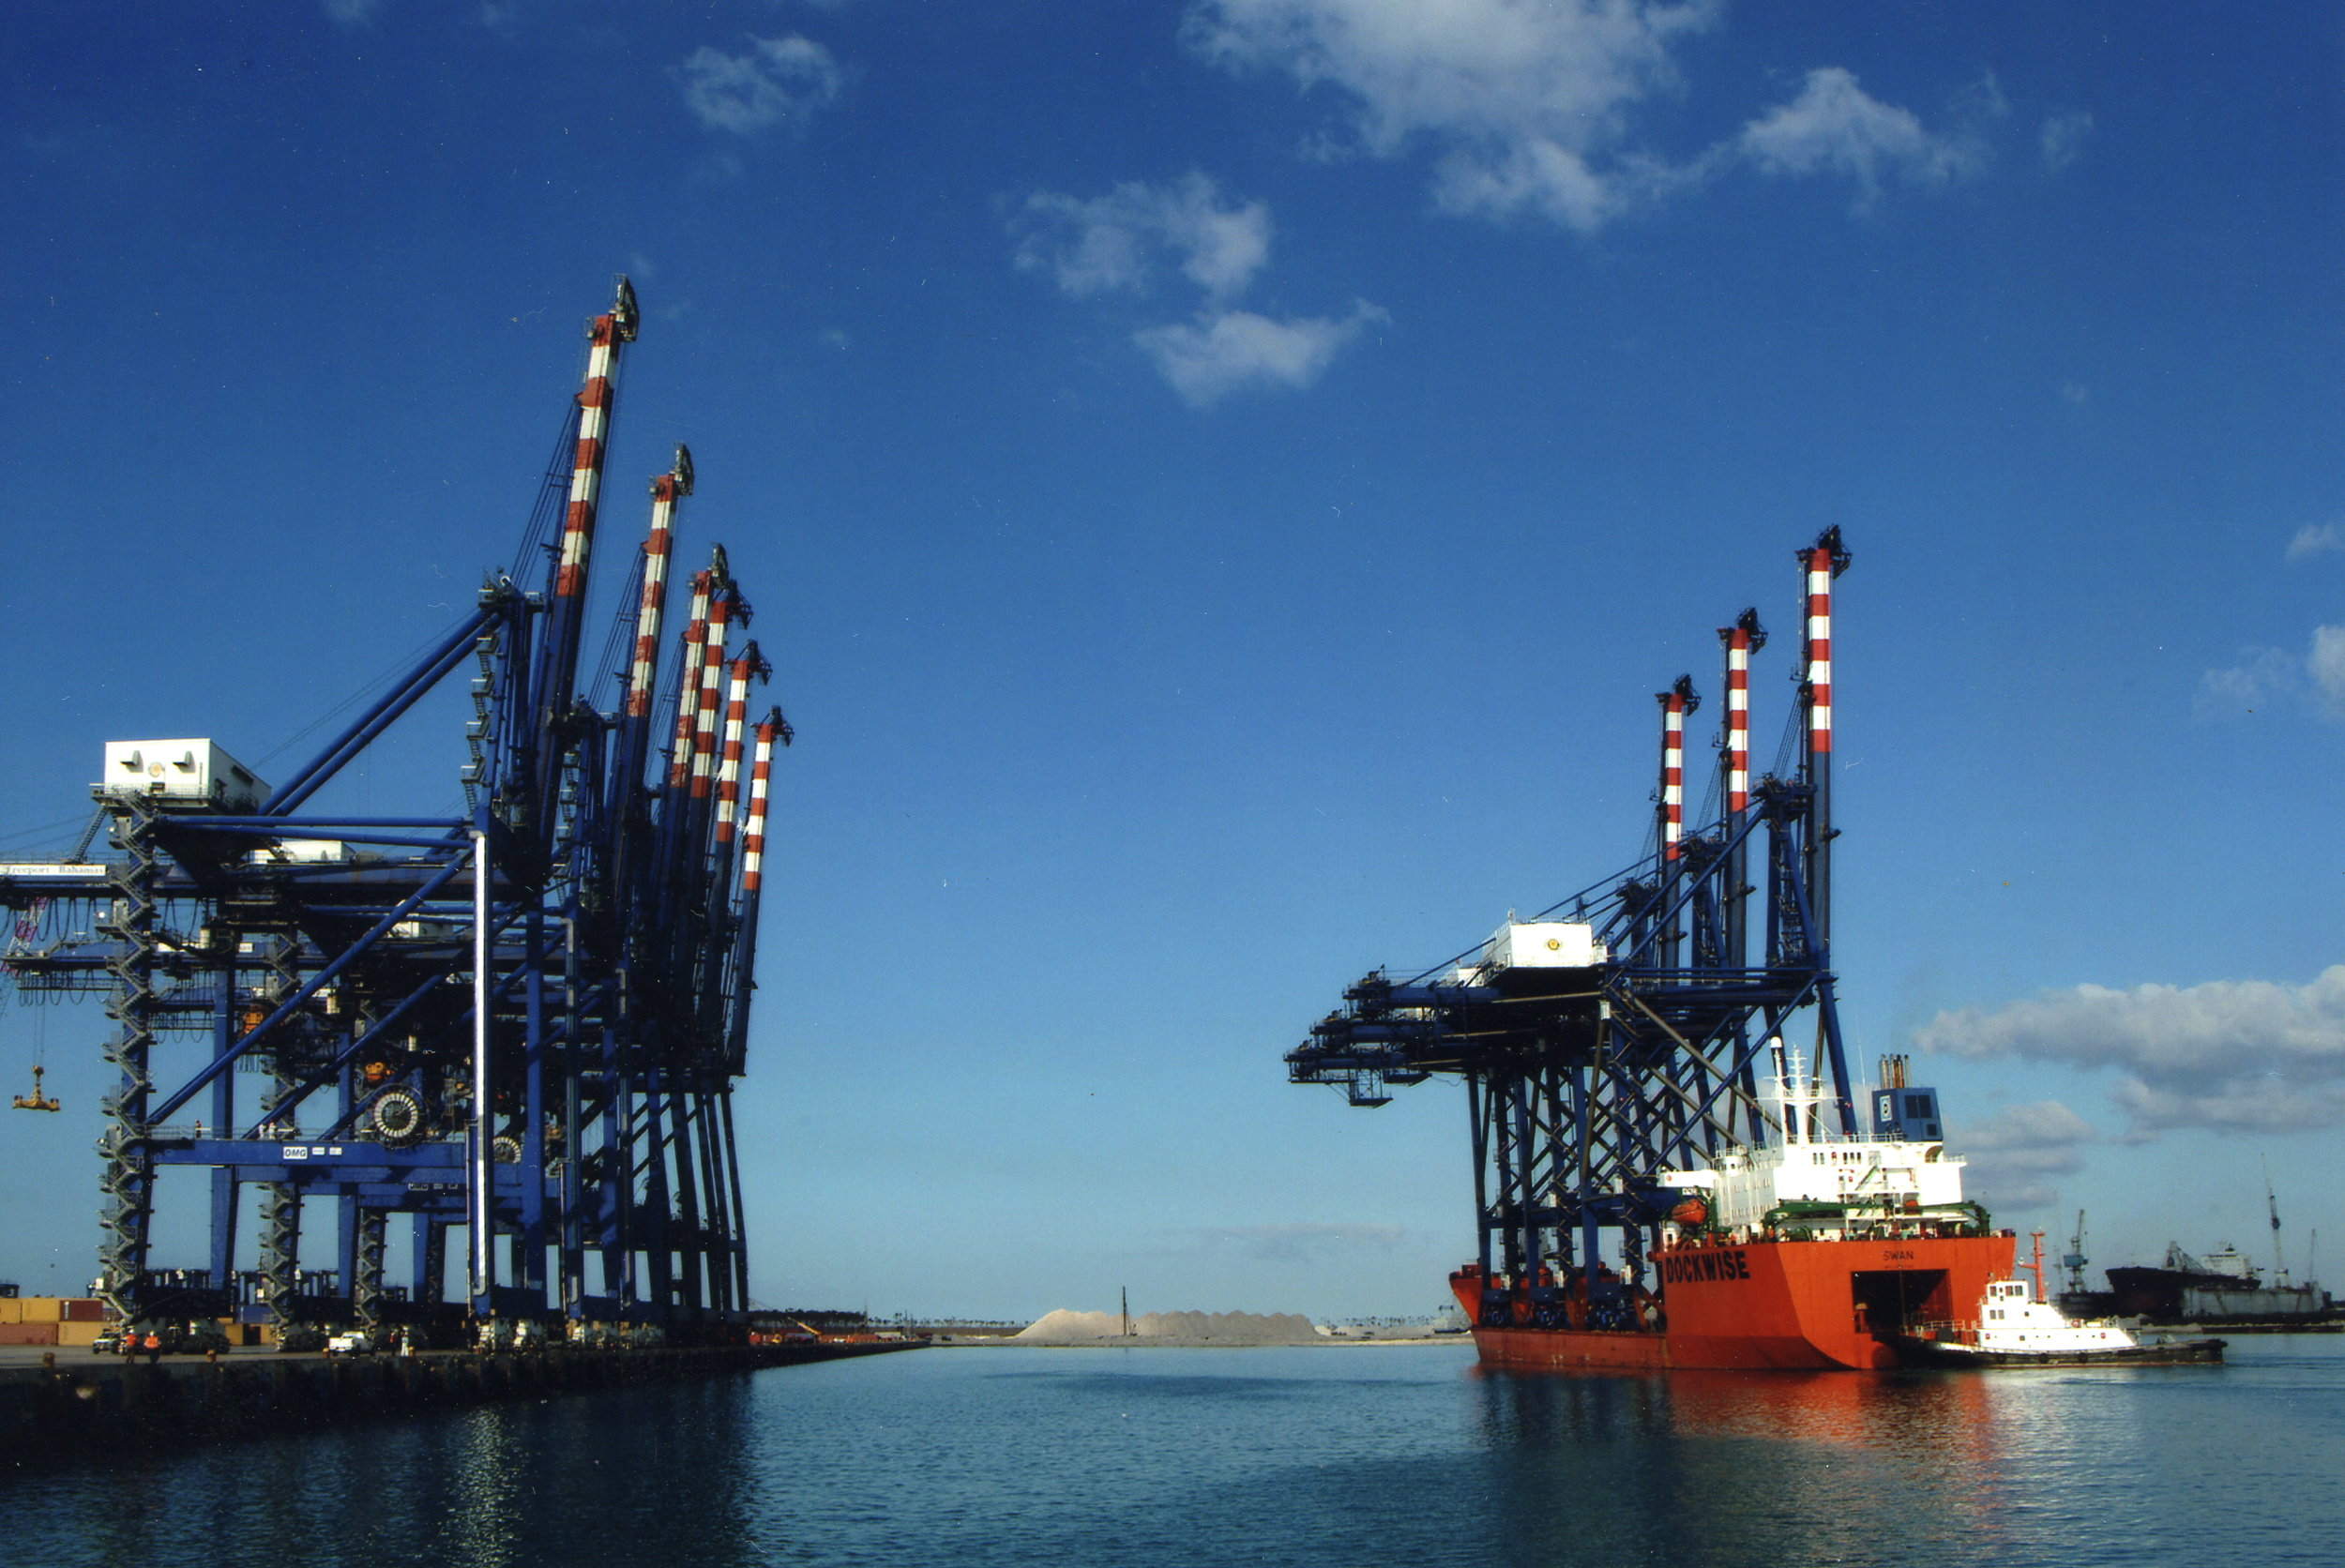 Arrival of cranes at Freeport Container Port in 1997